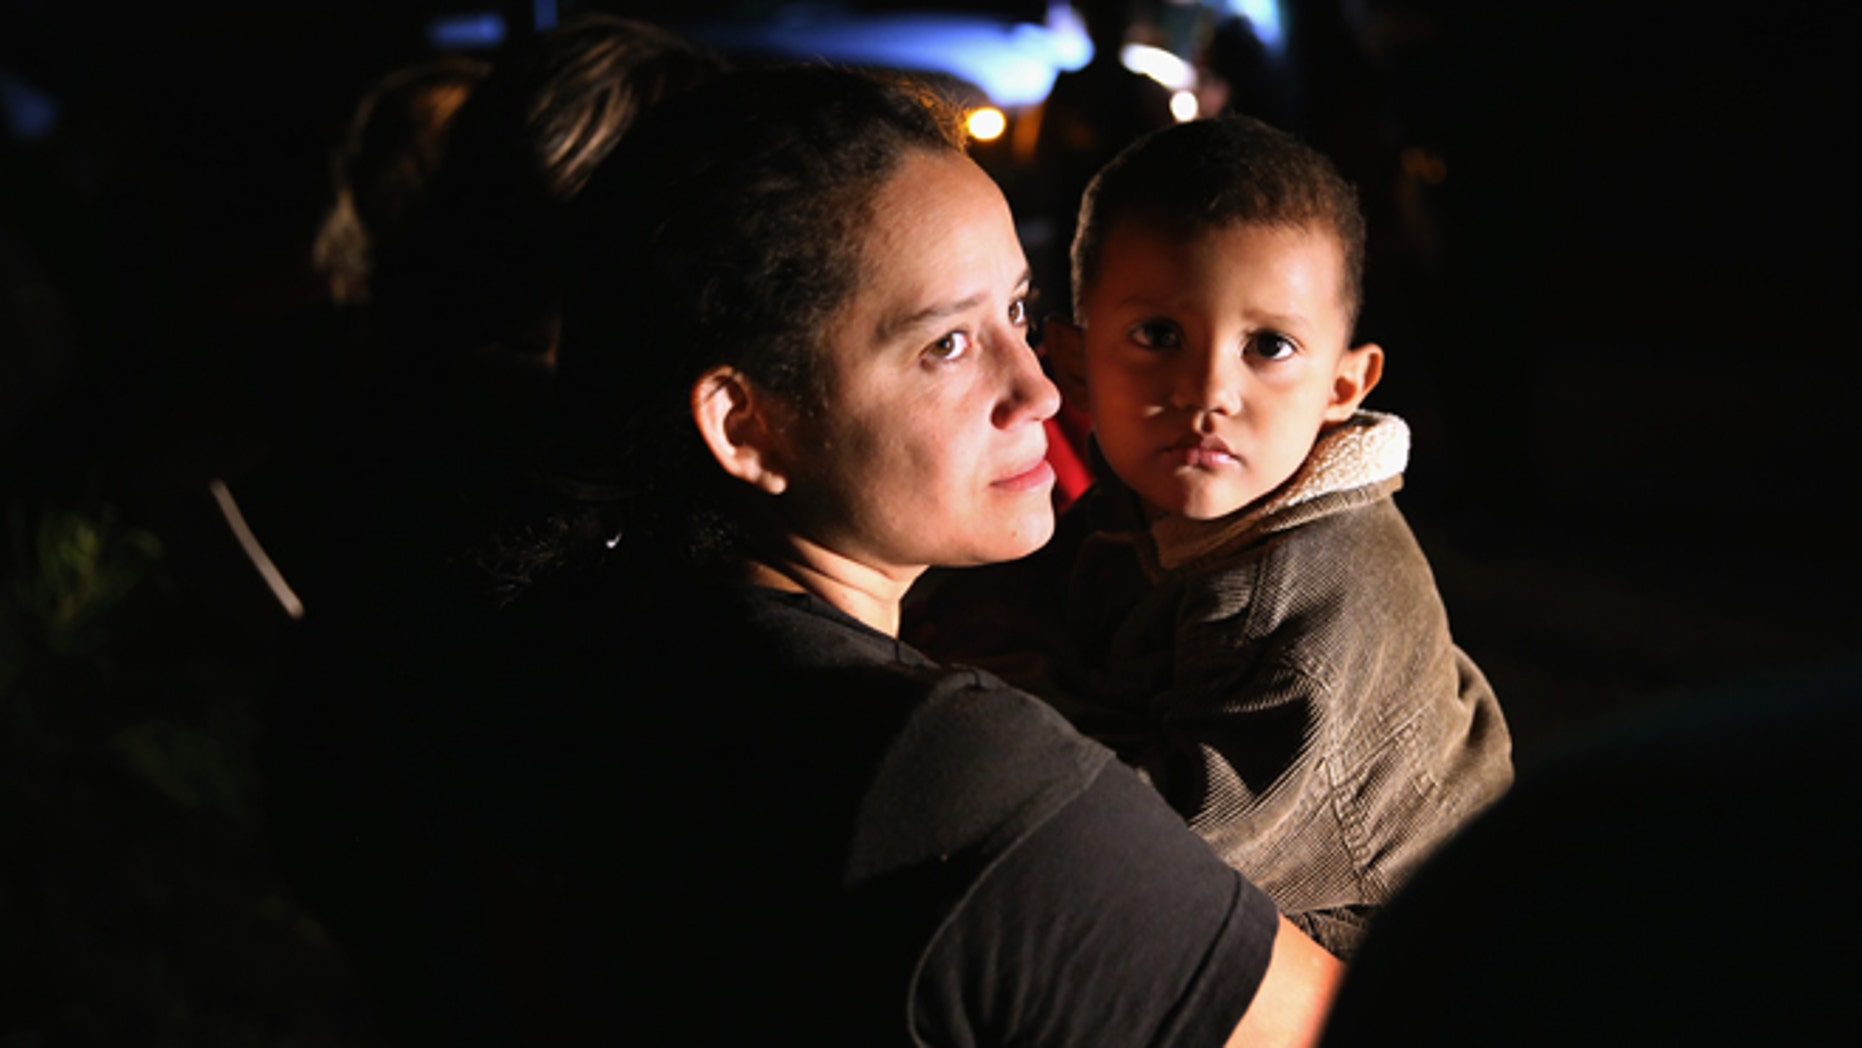 MISSION, TX - SEPTEMBER 08:  Families of Central American immigrants, including Jamie Gonzales, 26, and her son Jose Manuel, 4, from El Salvador, turn themselves in to U.S. Border Patrol agents after crossing the Rio Grande River from Mexico on September 8, 2014 to Mission, Texas. Although the numbers of such immigrant families and unaccompanied minors have decreased from a springtime high, thousands continue to cross in the border illegally into the United States. The Rio Grande Valley sector is the busiest area for illegal border crossings, especially for Central Americans, into the U.S.  (Photo by John Moore/Getty Images)